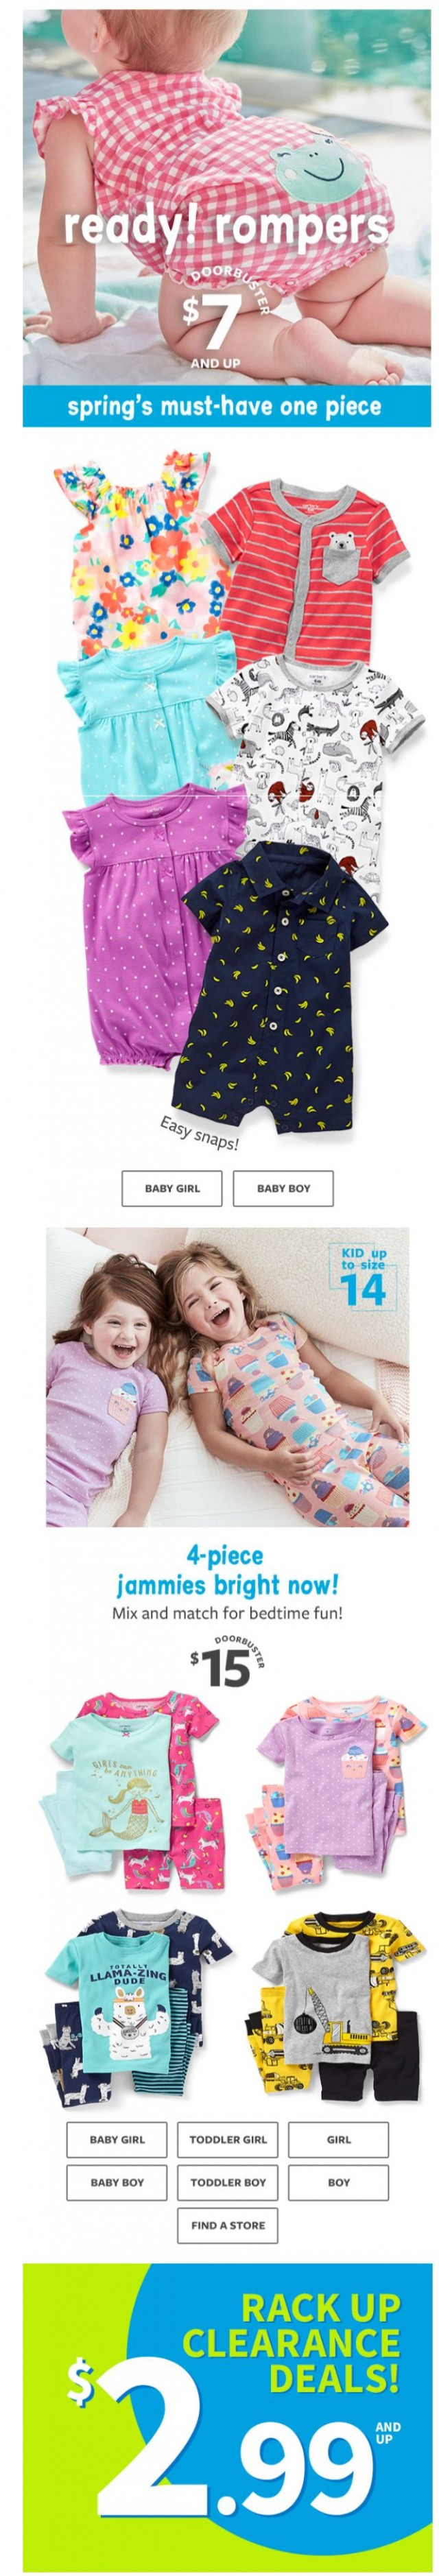 Coupon for: carter's - Romp and roll! $7 and up rompers!